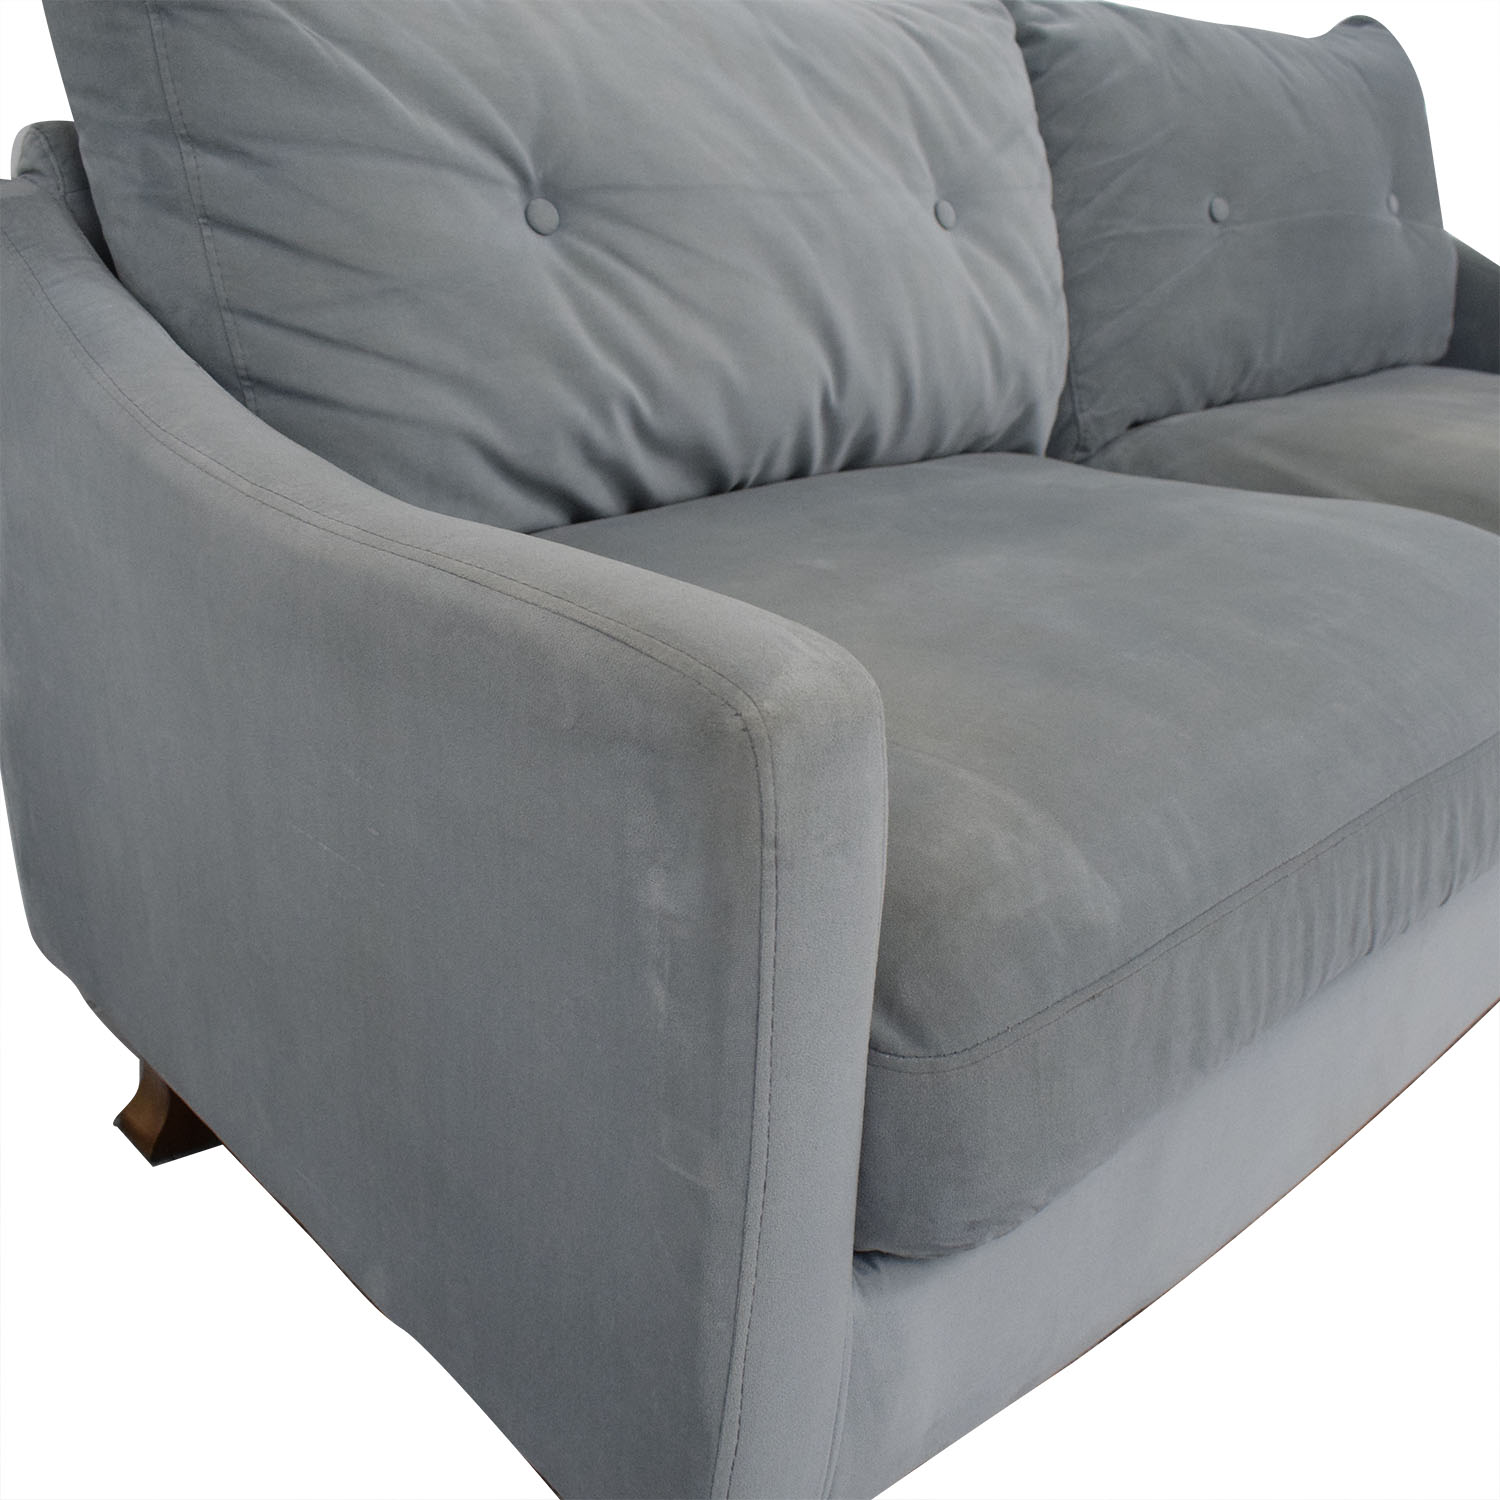 buy Urban Outfitters Urban Outfitters Two Cushion Sofa online